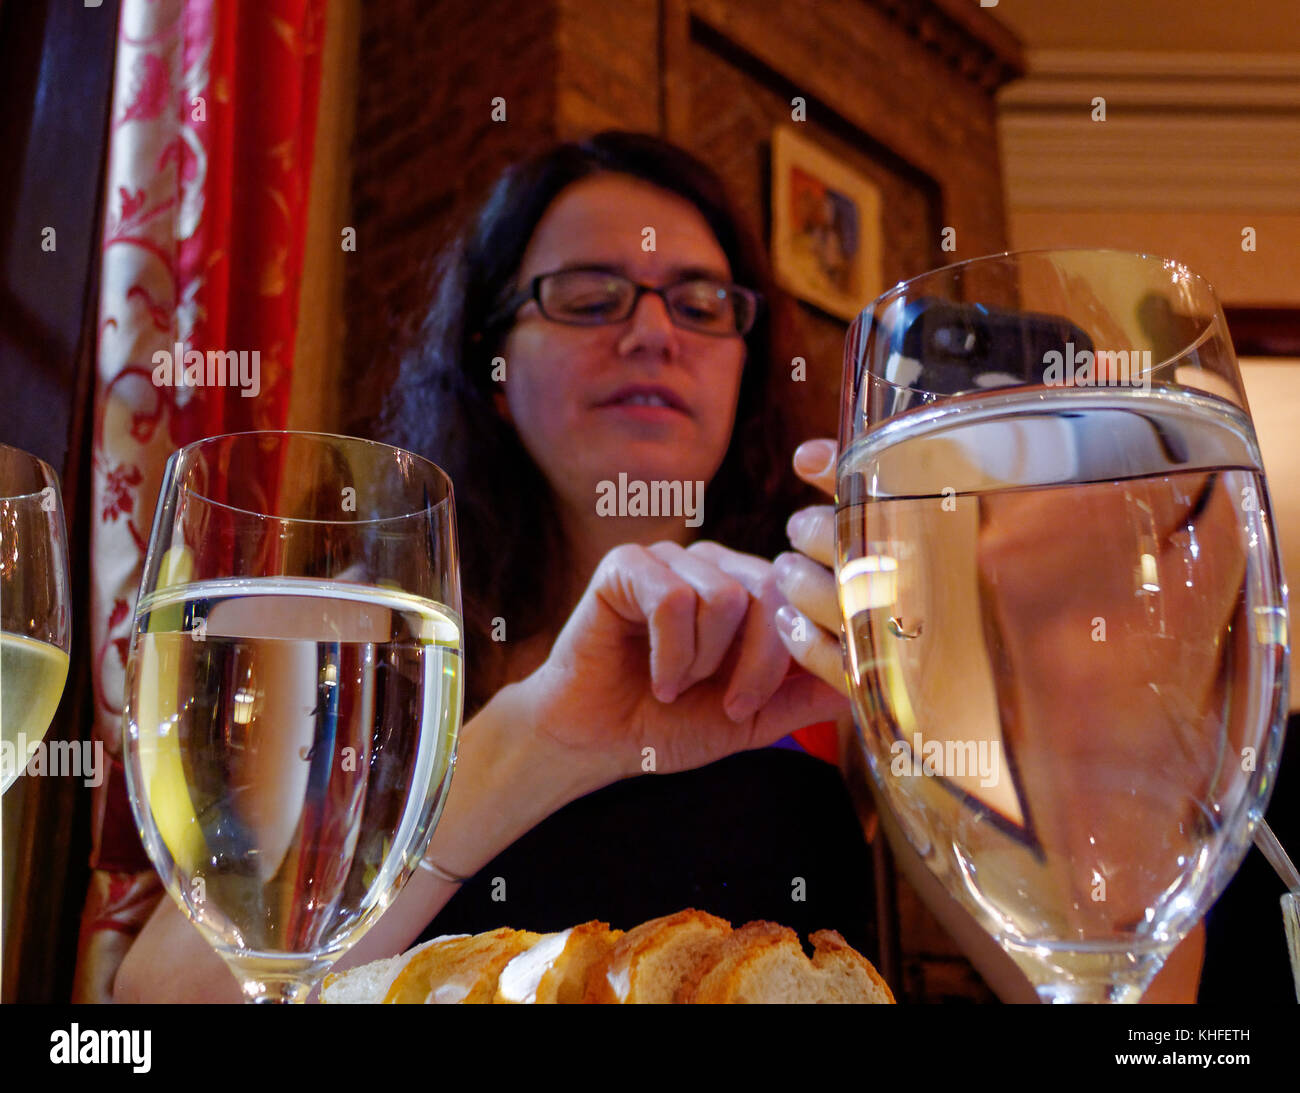 A woman using a mobile phone sat at a table ina restaurant - Stock Image